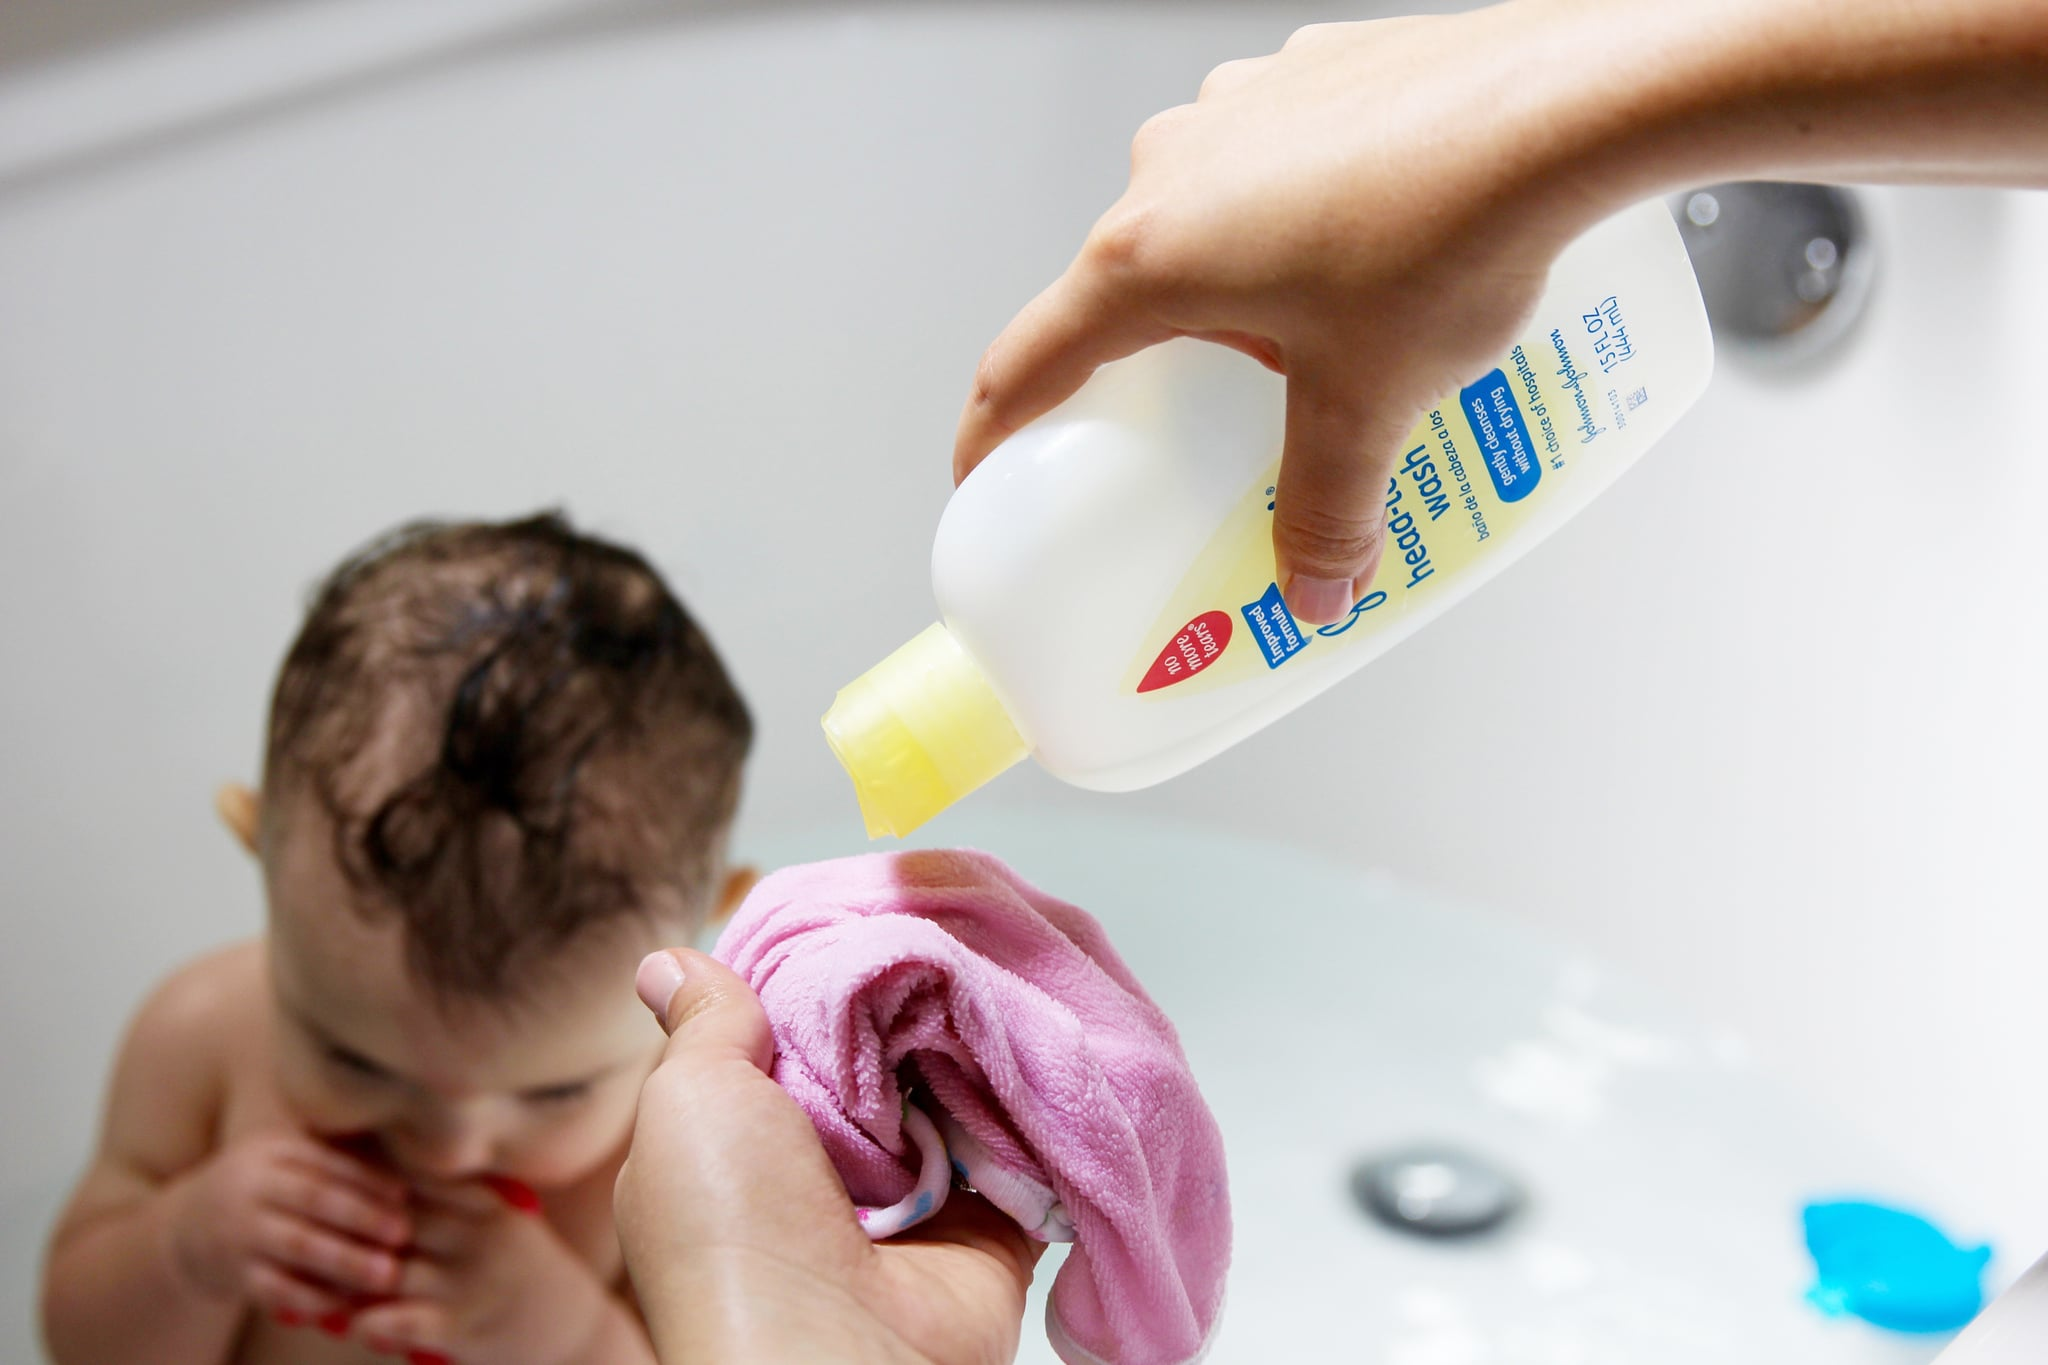 Uses For Baby Shampoo | POPSUGAR Smart Living